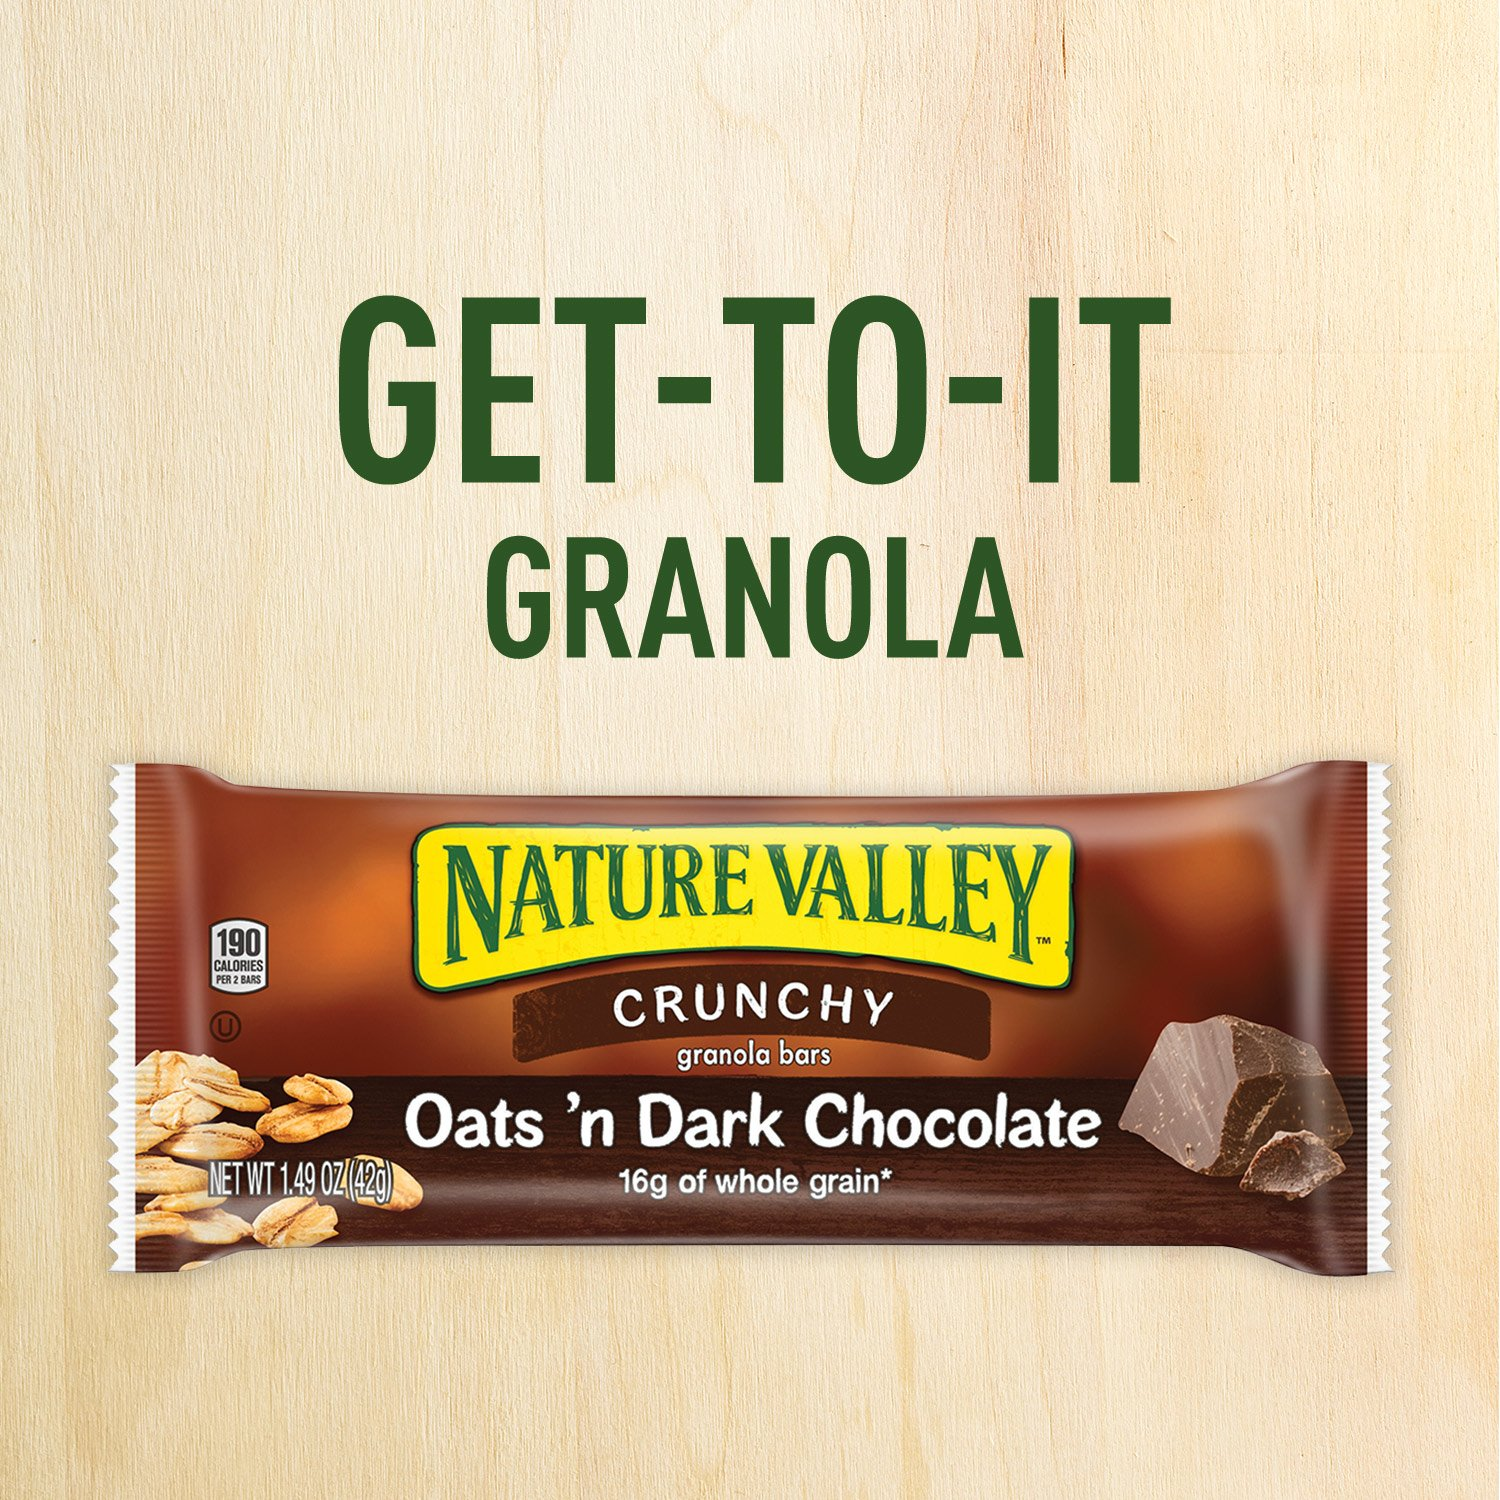 Nature Valley Granola Bars, Crunchy, Oats and Dark Chocolate, 12 Count, Pack of 6 by Nature Valley (Image #6)